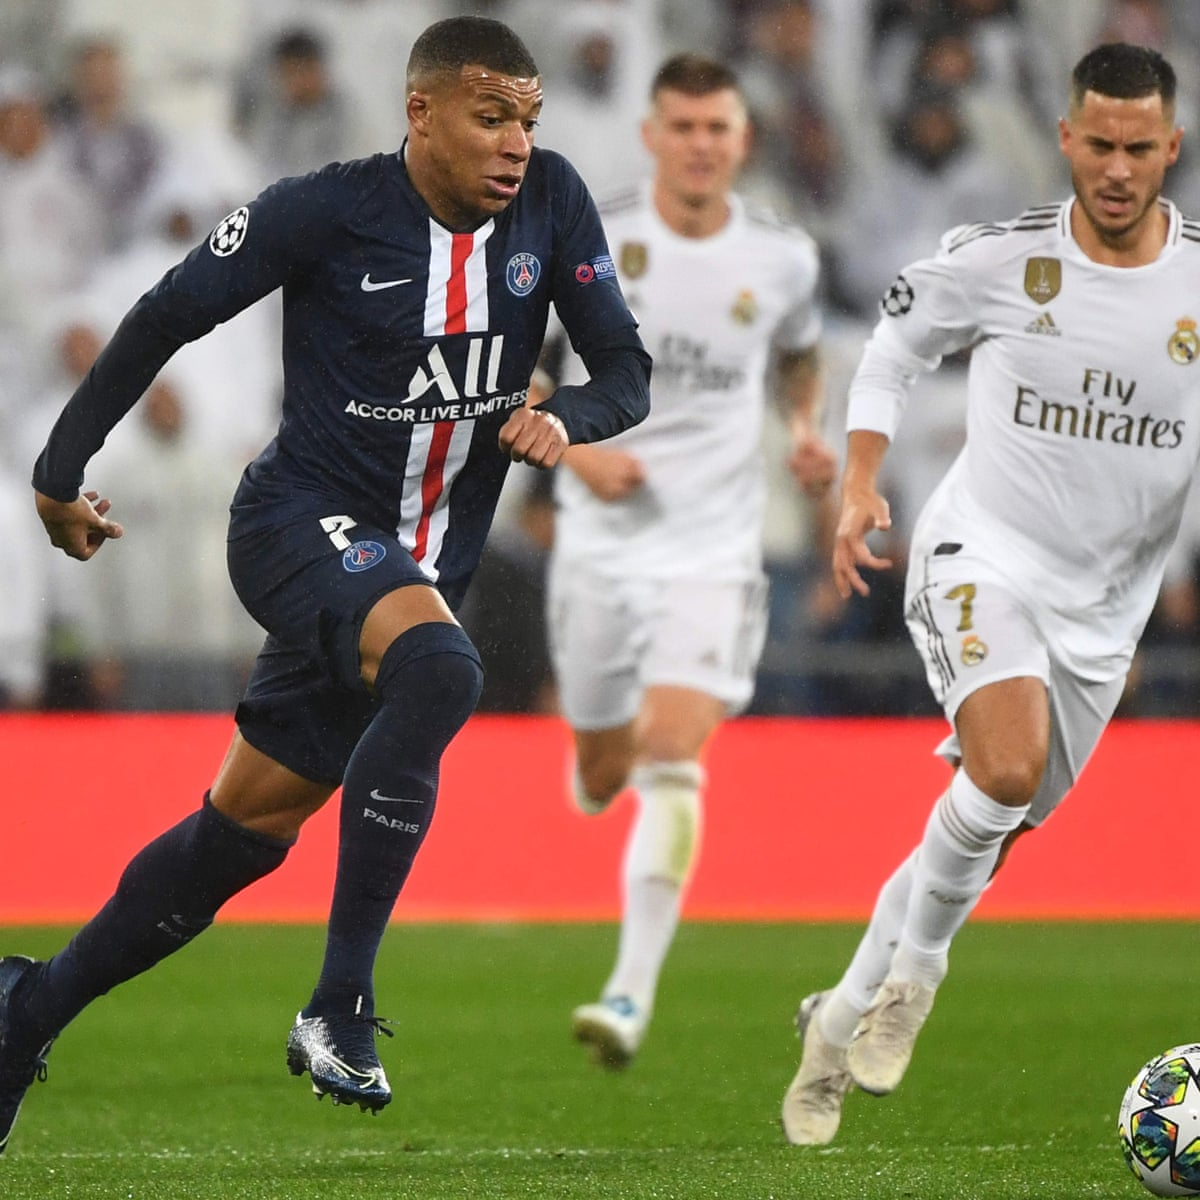 French football season will not resume but La Liga has new hope of restart  | Ligue 1 | The Guardian